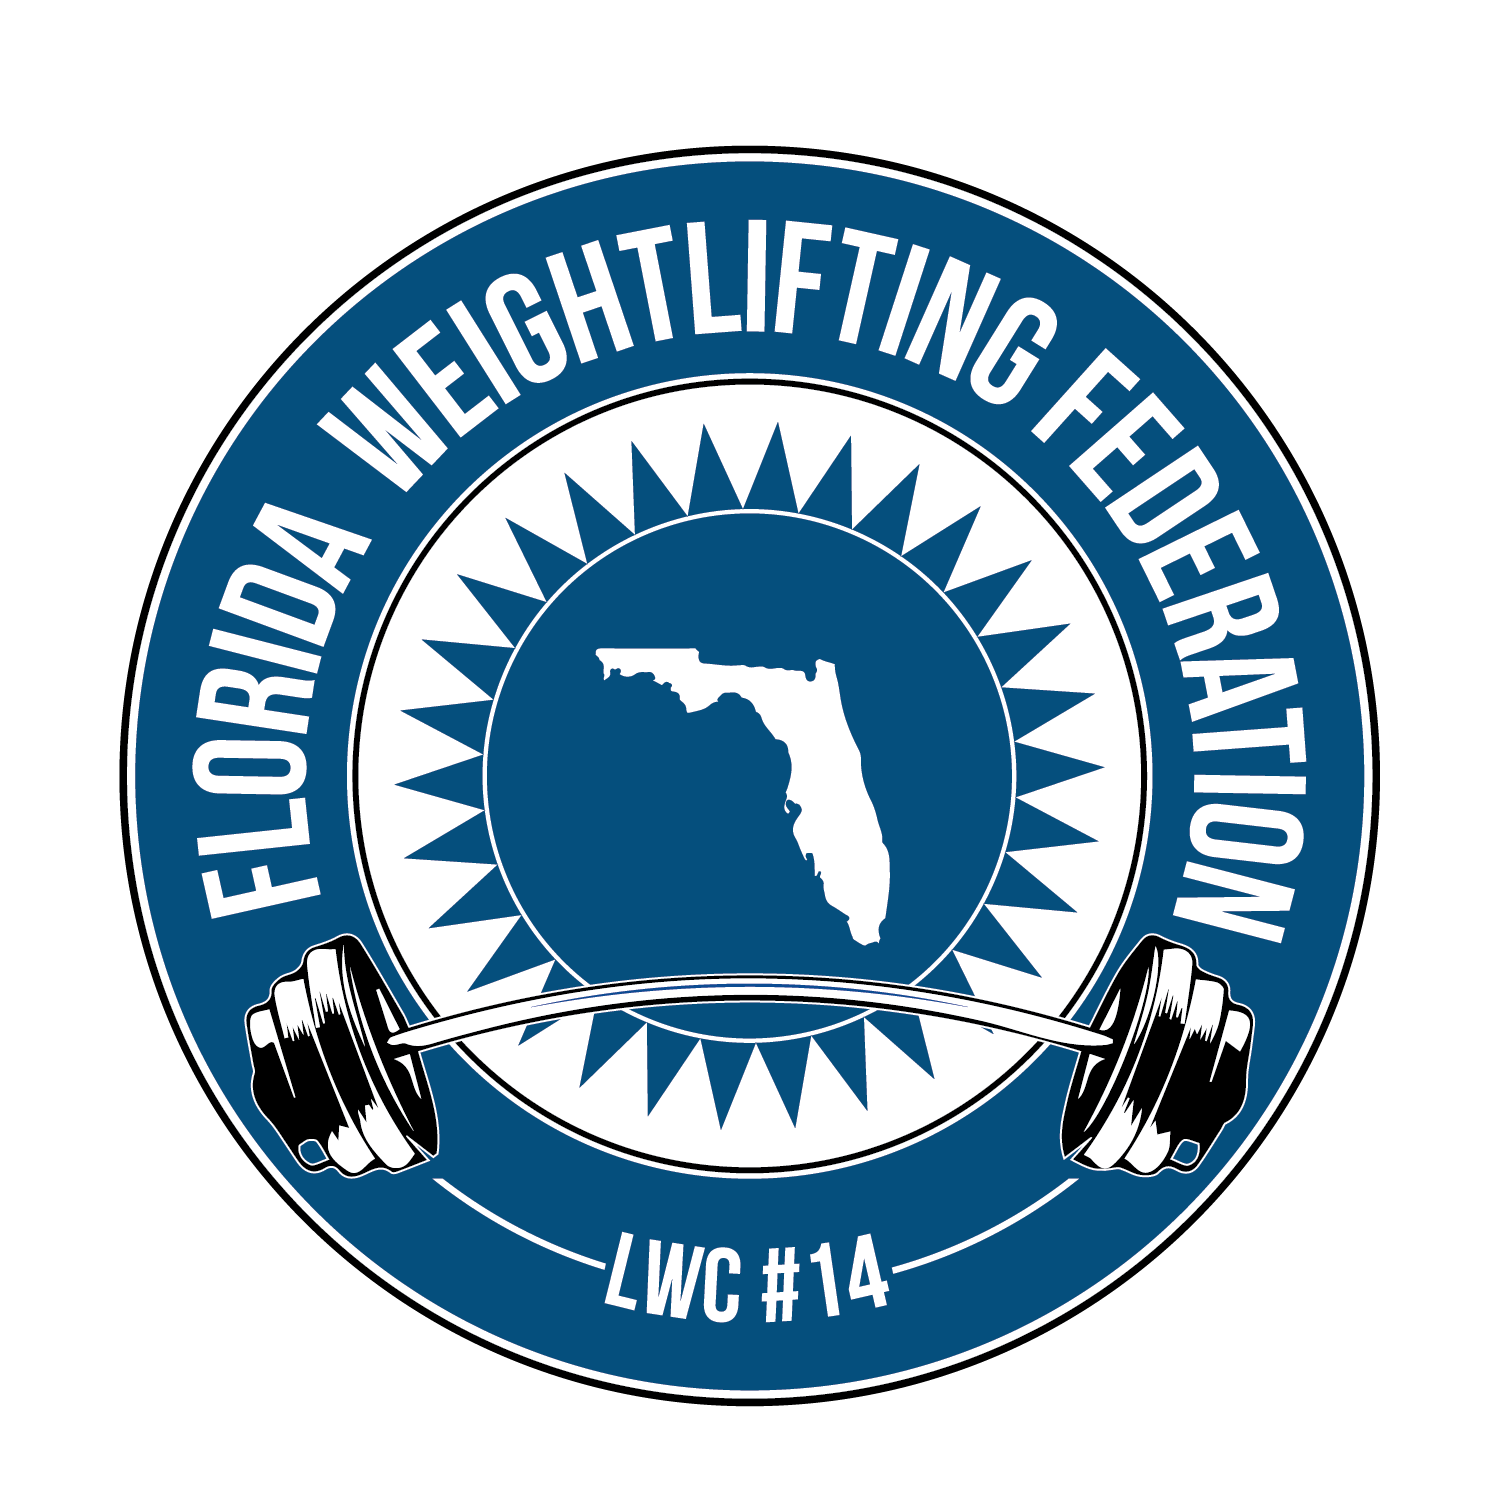 Florida Weightlifting Federation | USA Weightlifting LWC #14